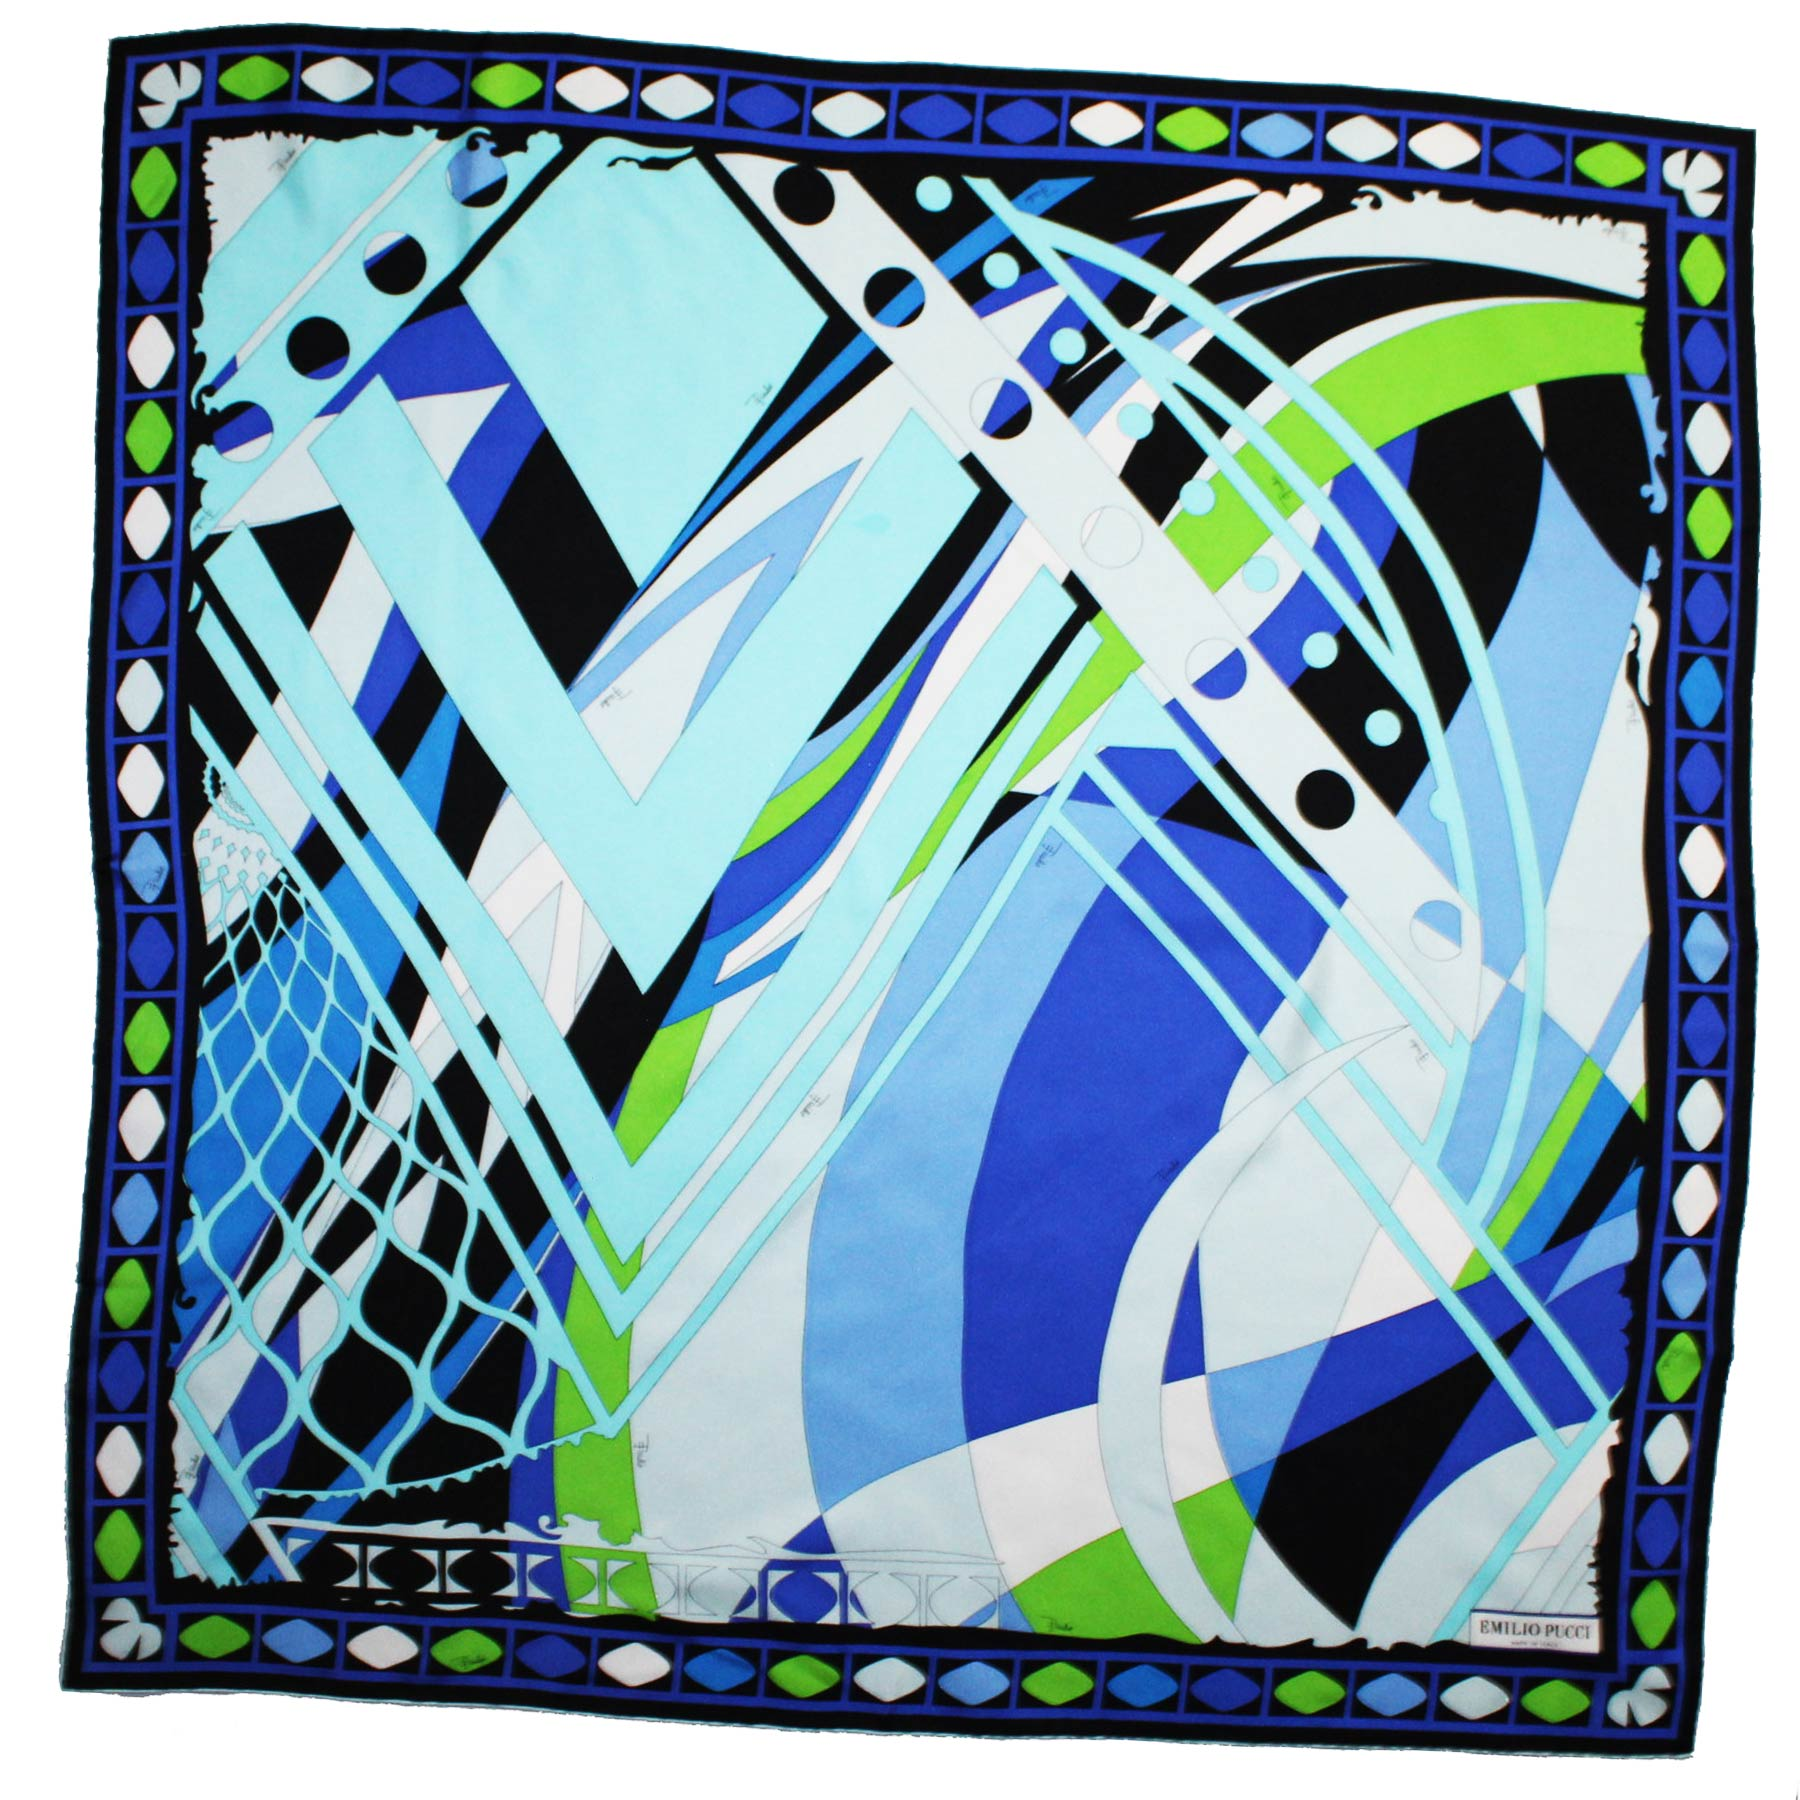 Emilio Pucci Scarf Royal Blue Lime Design - Large Twill Silk Square Foulard